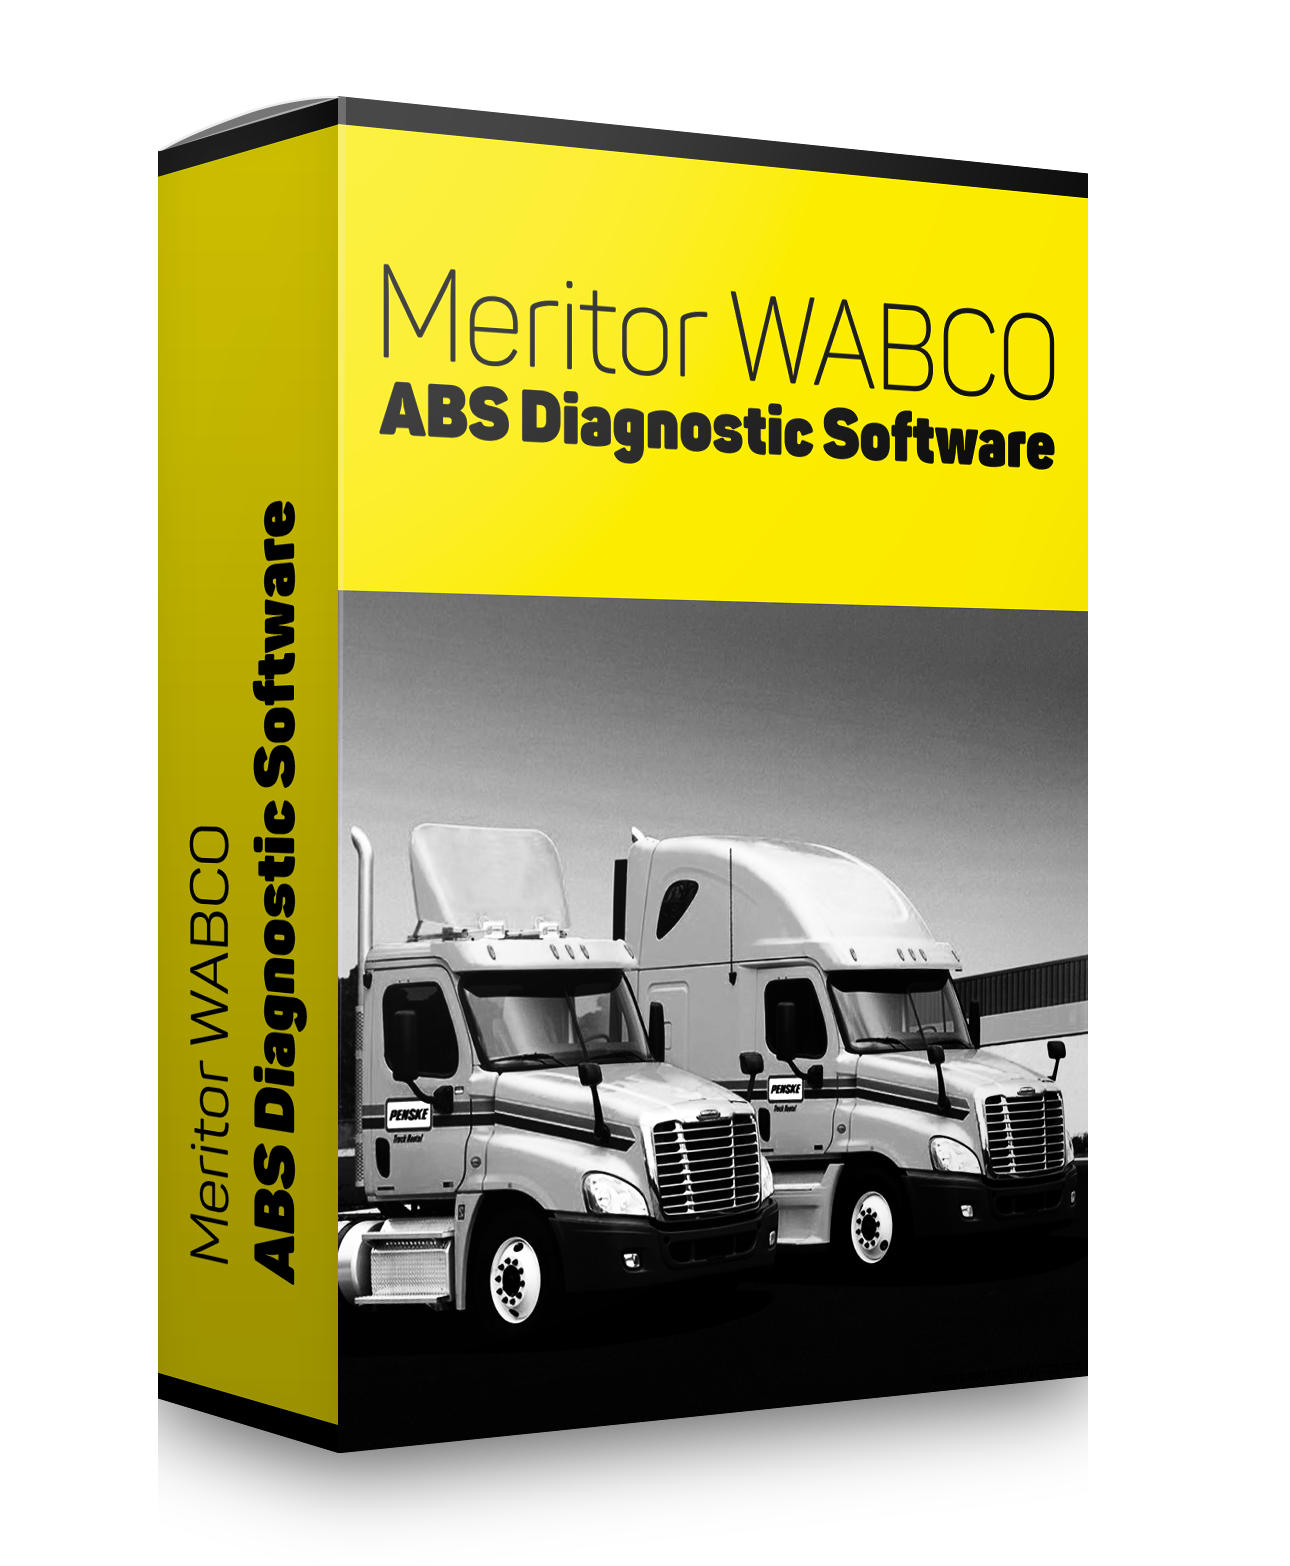 Auto Carrier Schematic Wabco Abs Free Wiring Diagram For You Meritor Diagnostic Software Toolbox V12 Heavy Duty Truck Rh Heavydutytruckdiagnostics Com Bendix Air Brake Freightliner